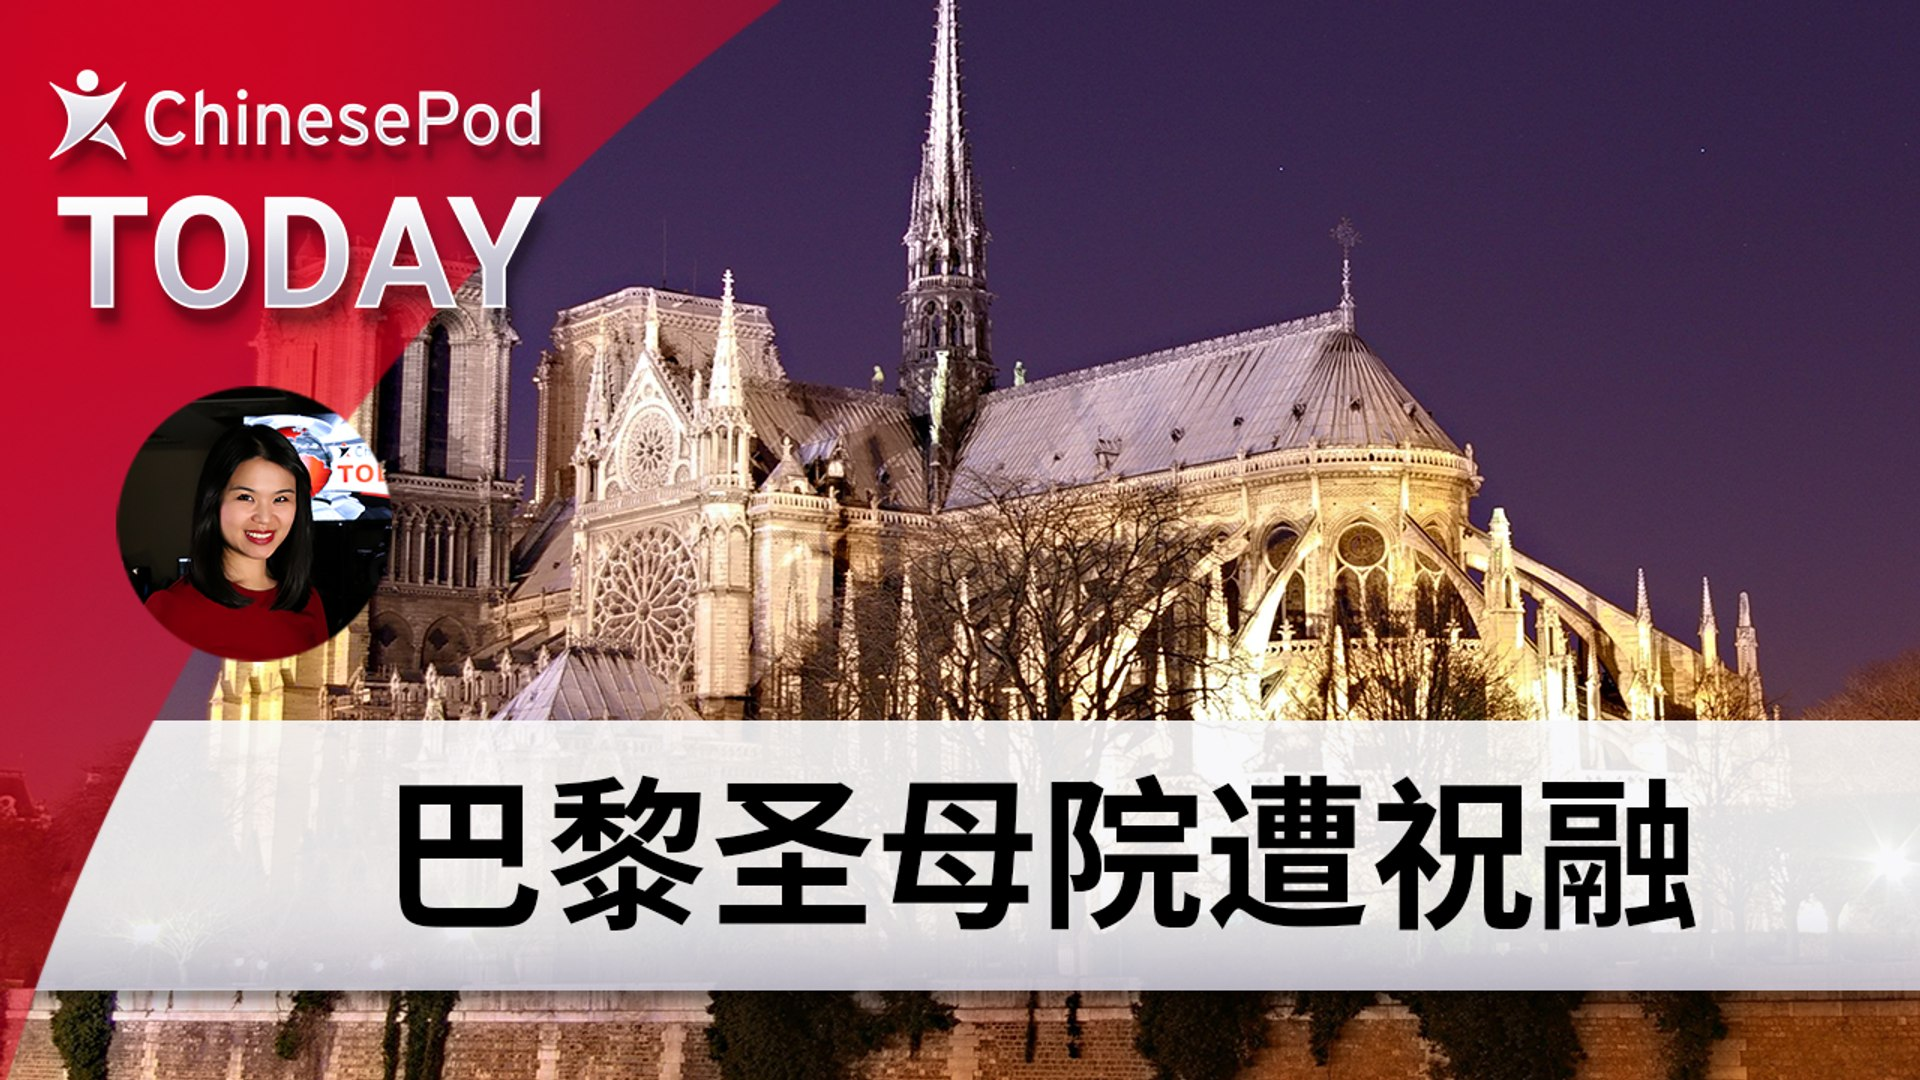 ChinesePod Today: Notre Dame Cathedral Ravaged by Fire (simp. characters)